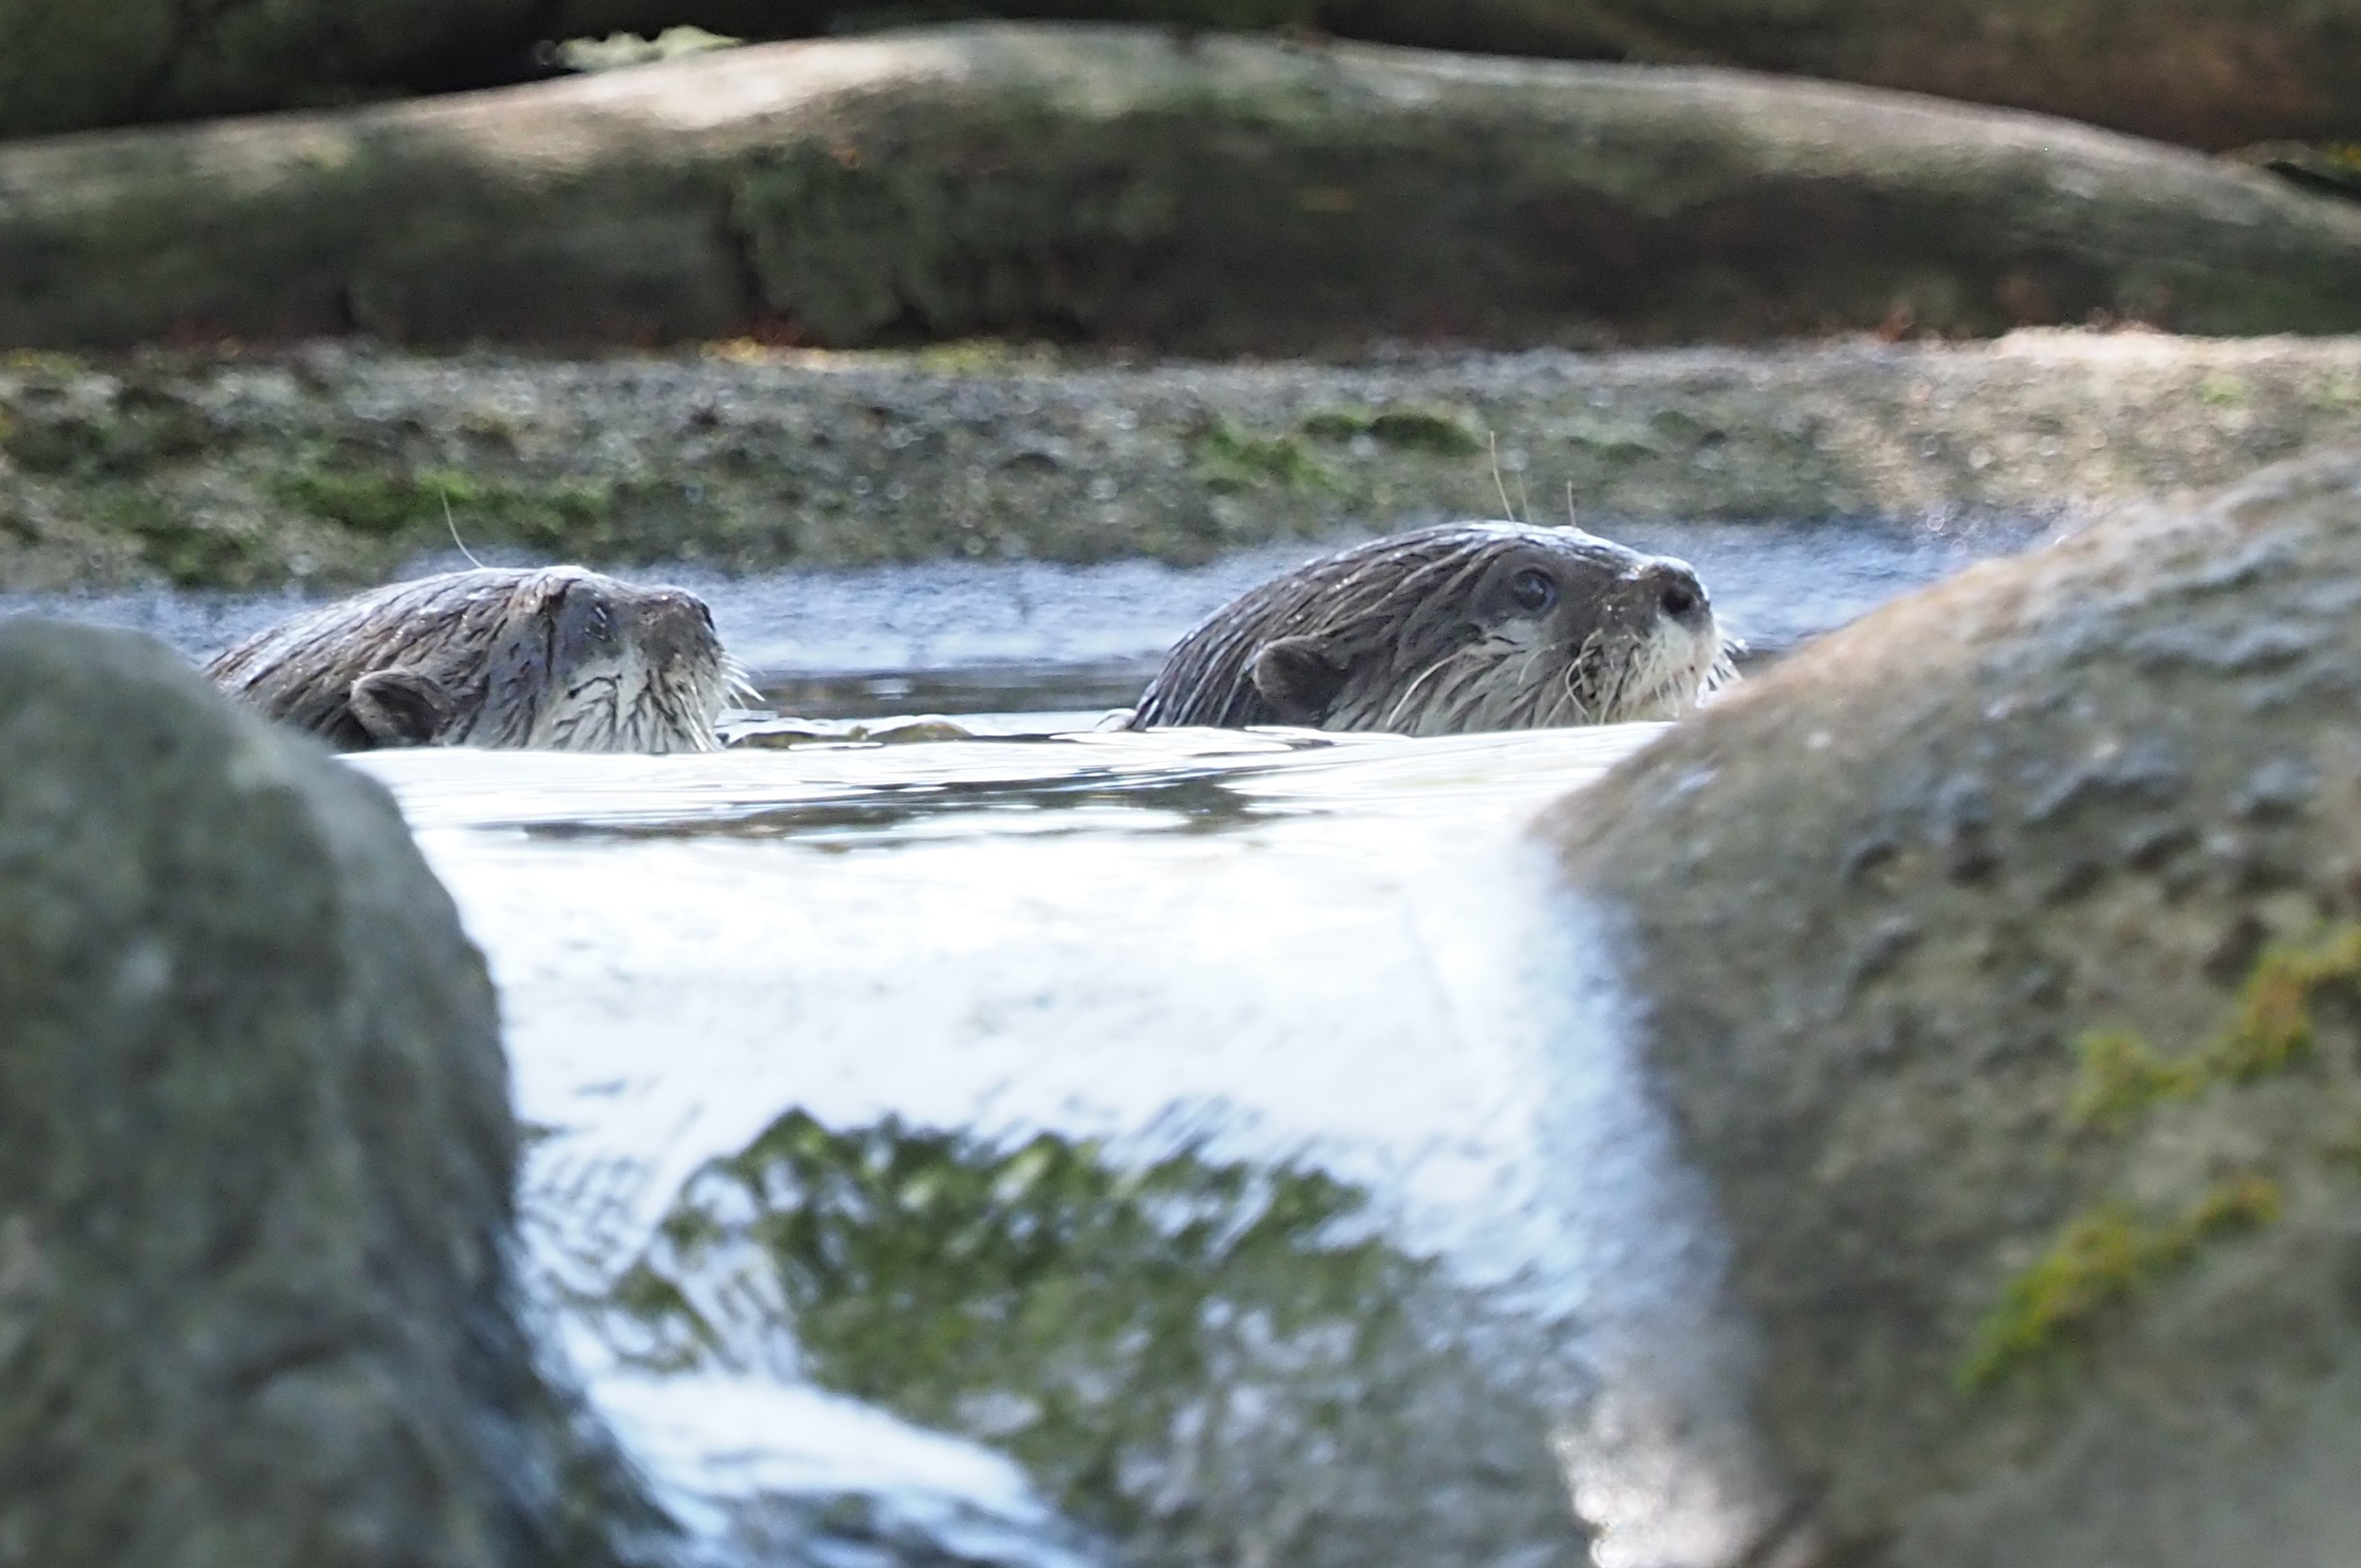 Two otters at ZSL Whipsnade Zoo